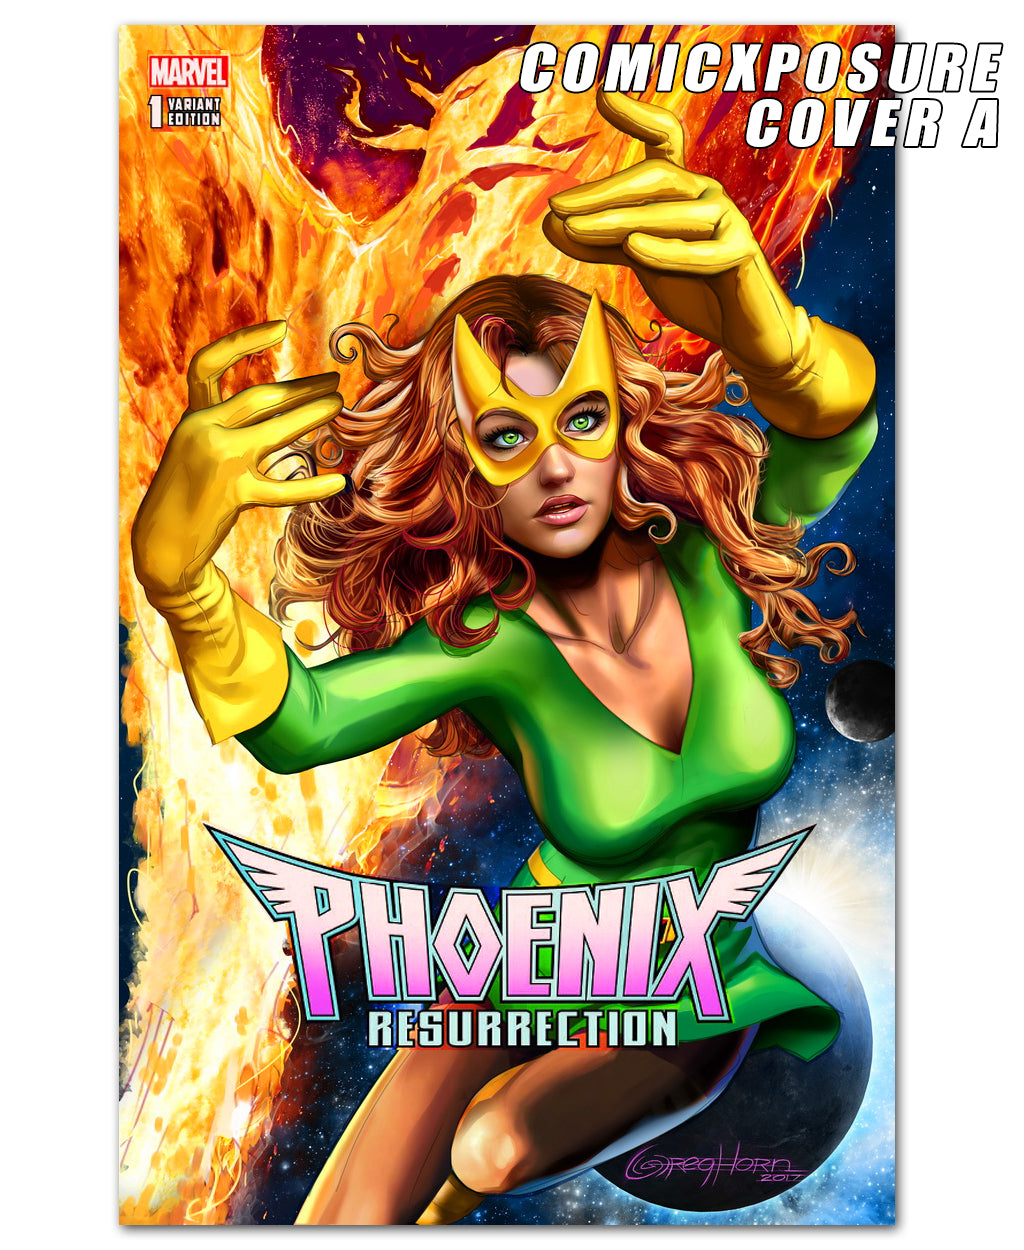 PHOENIX: RESURRECTION #1